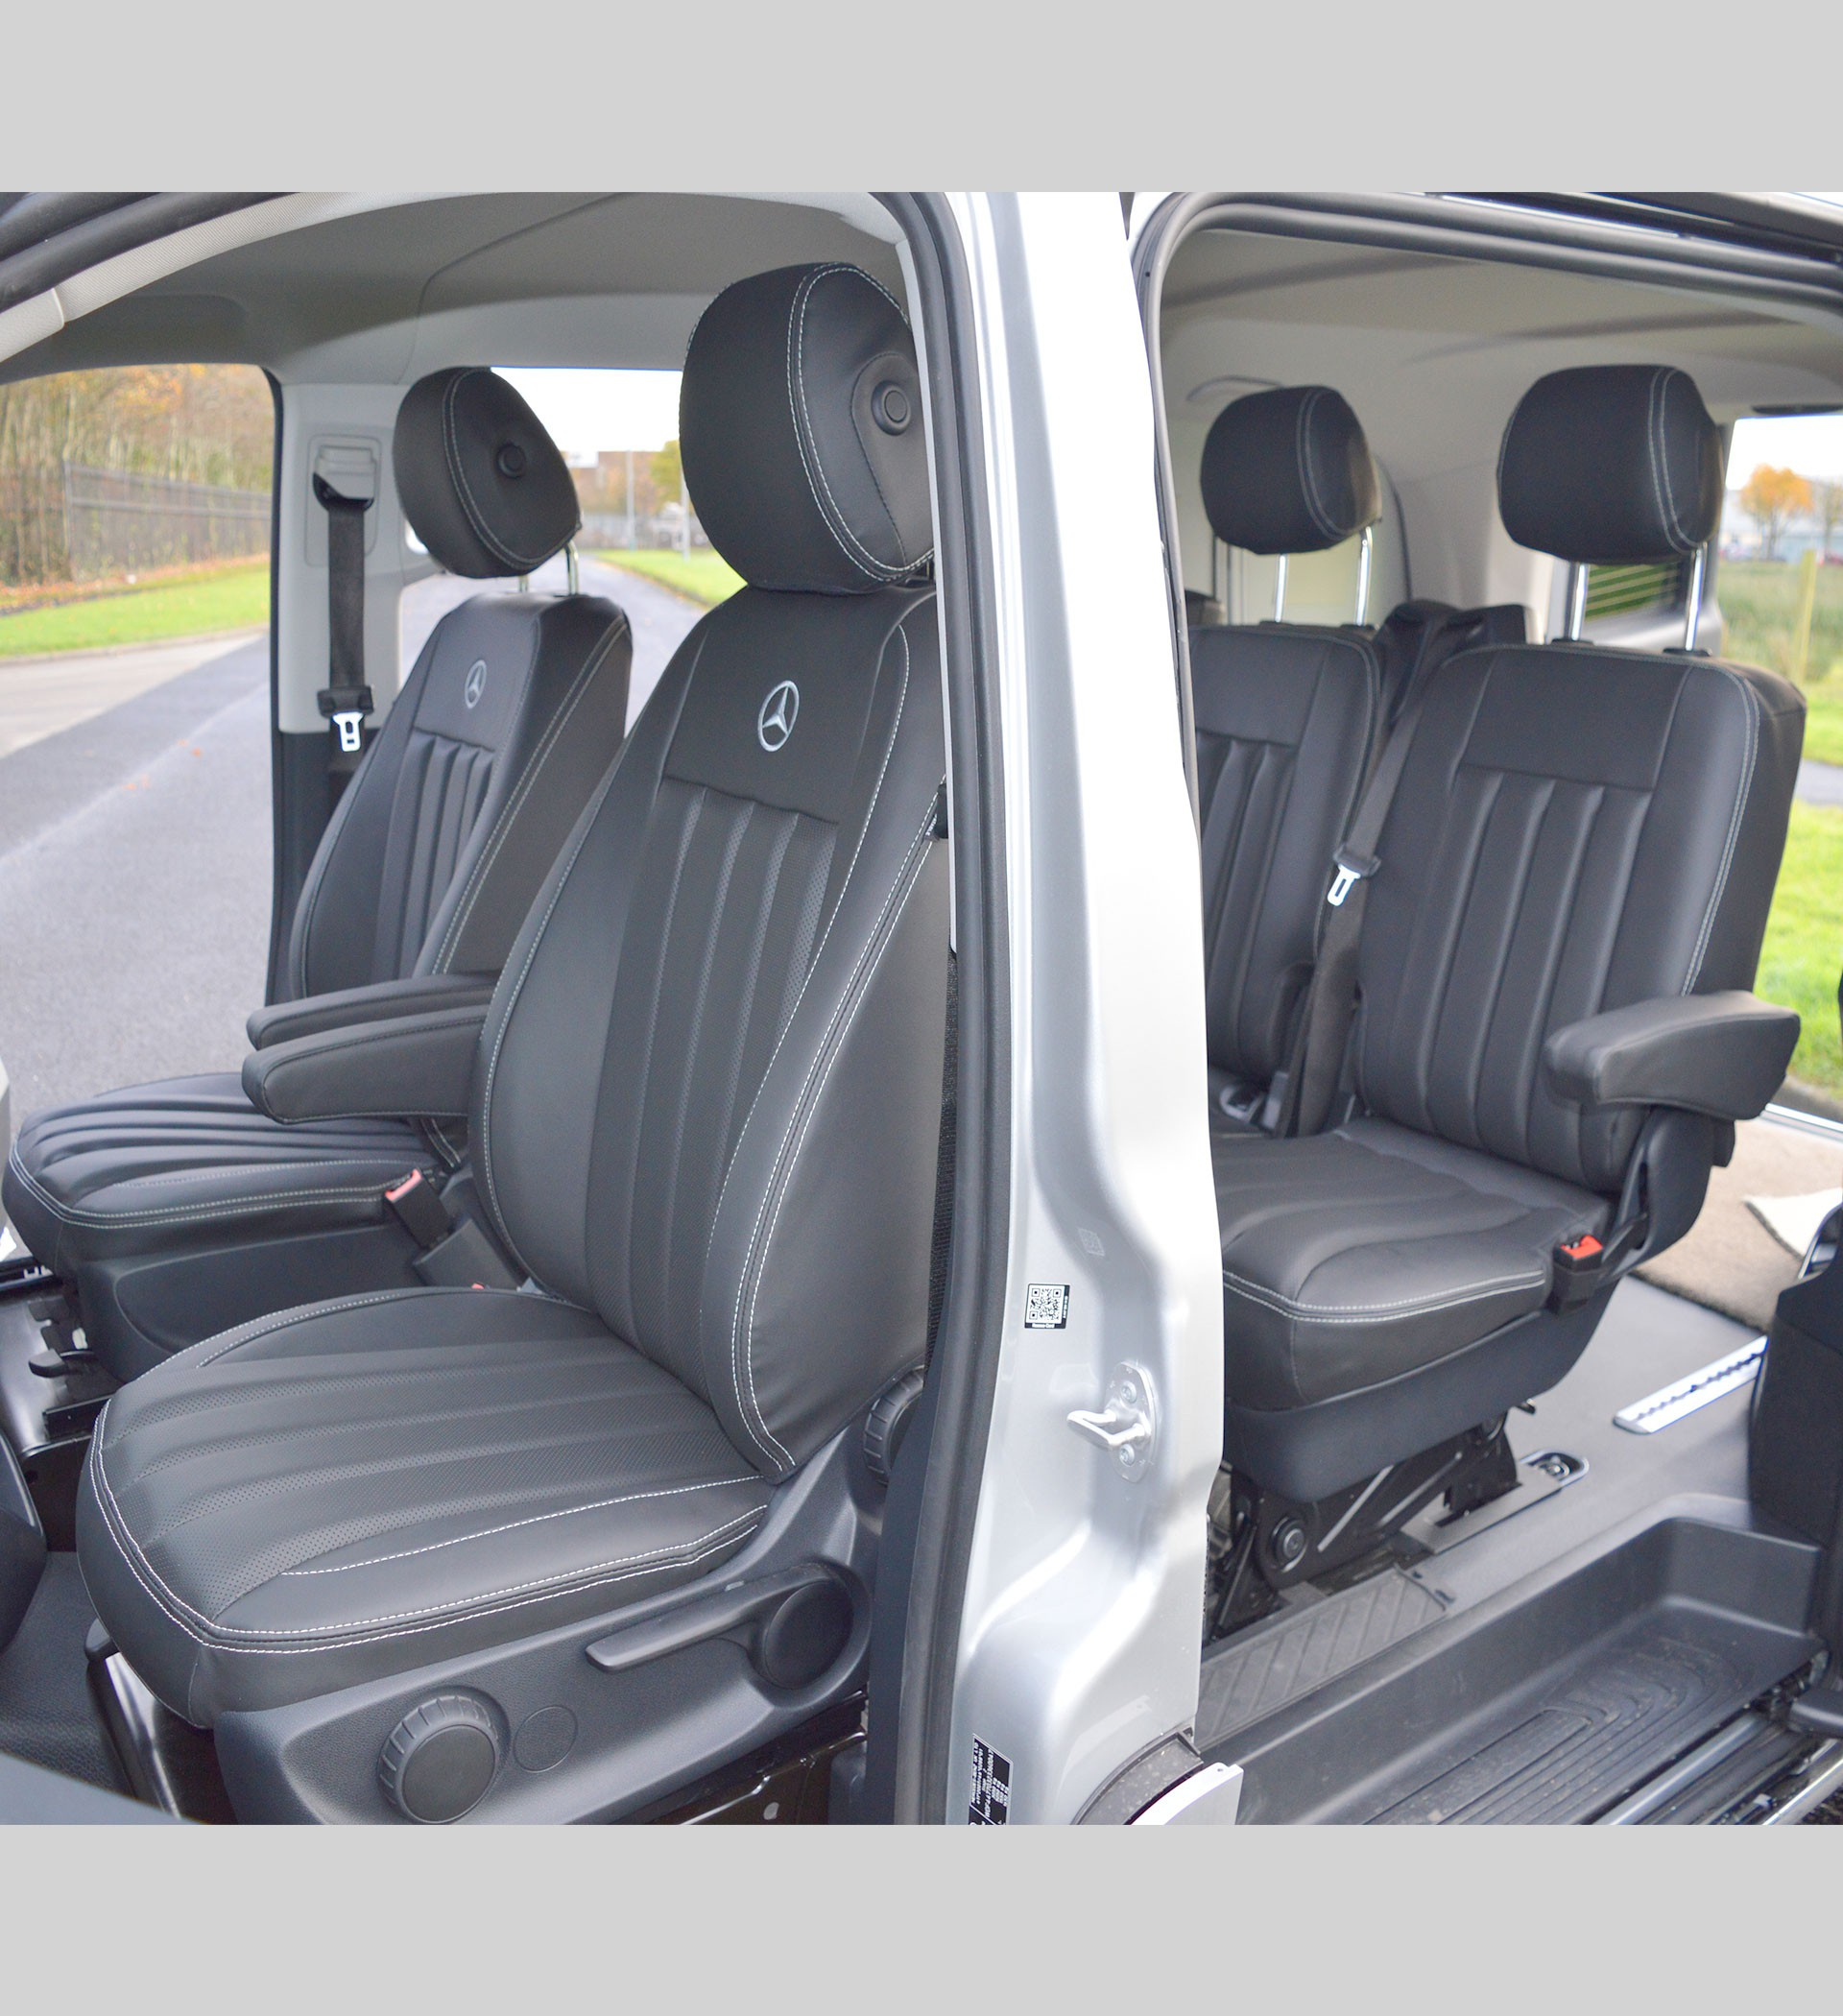 seat traveliner vito benz surgeons fts design covers oem seater shop mercedes